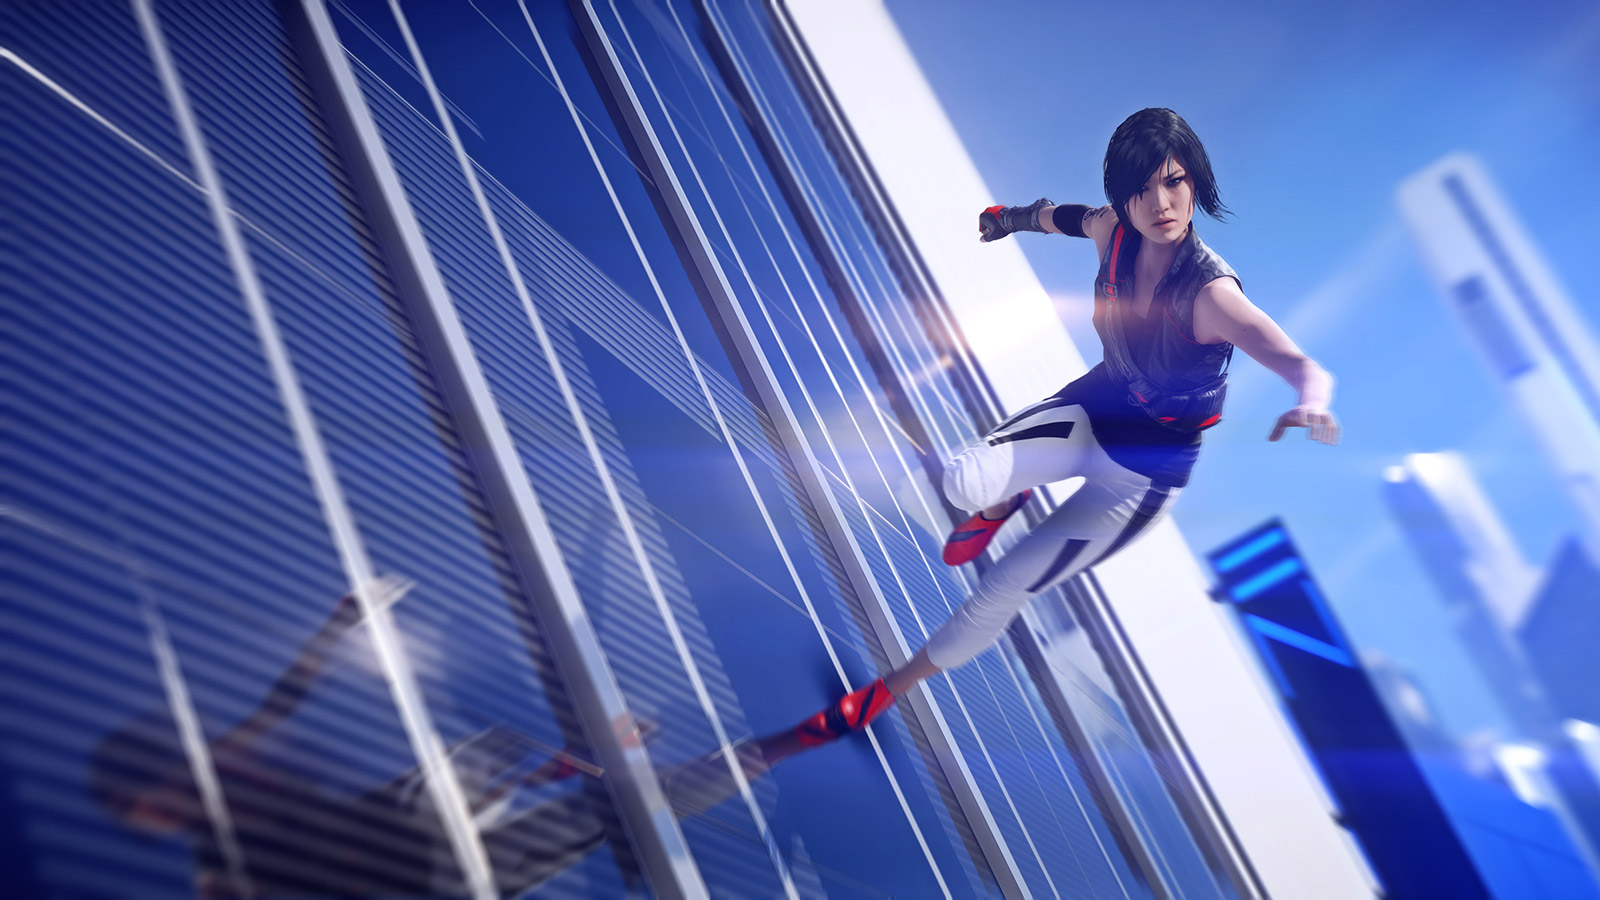 Free Mirror's Edge Catalyst Wallpaper in 1600x900